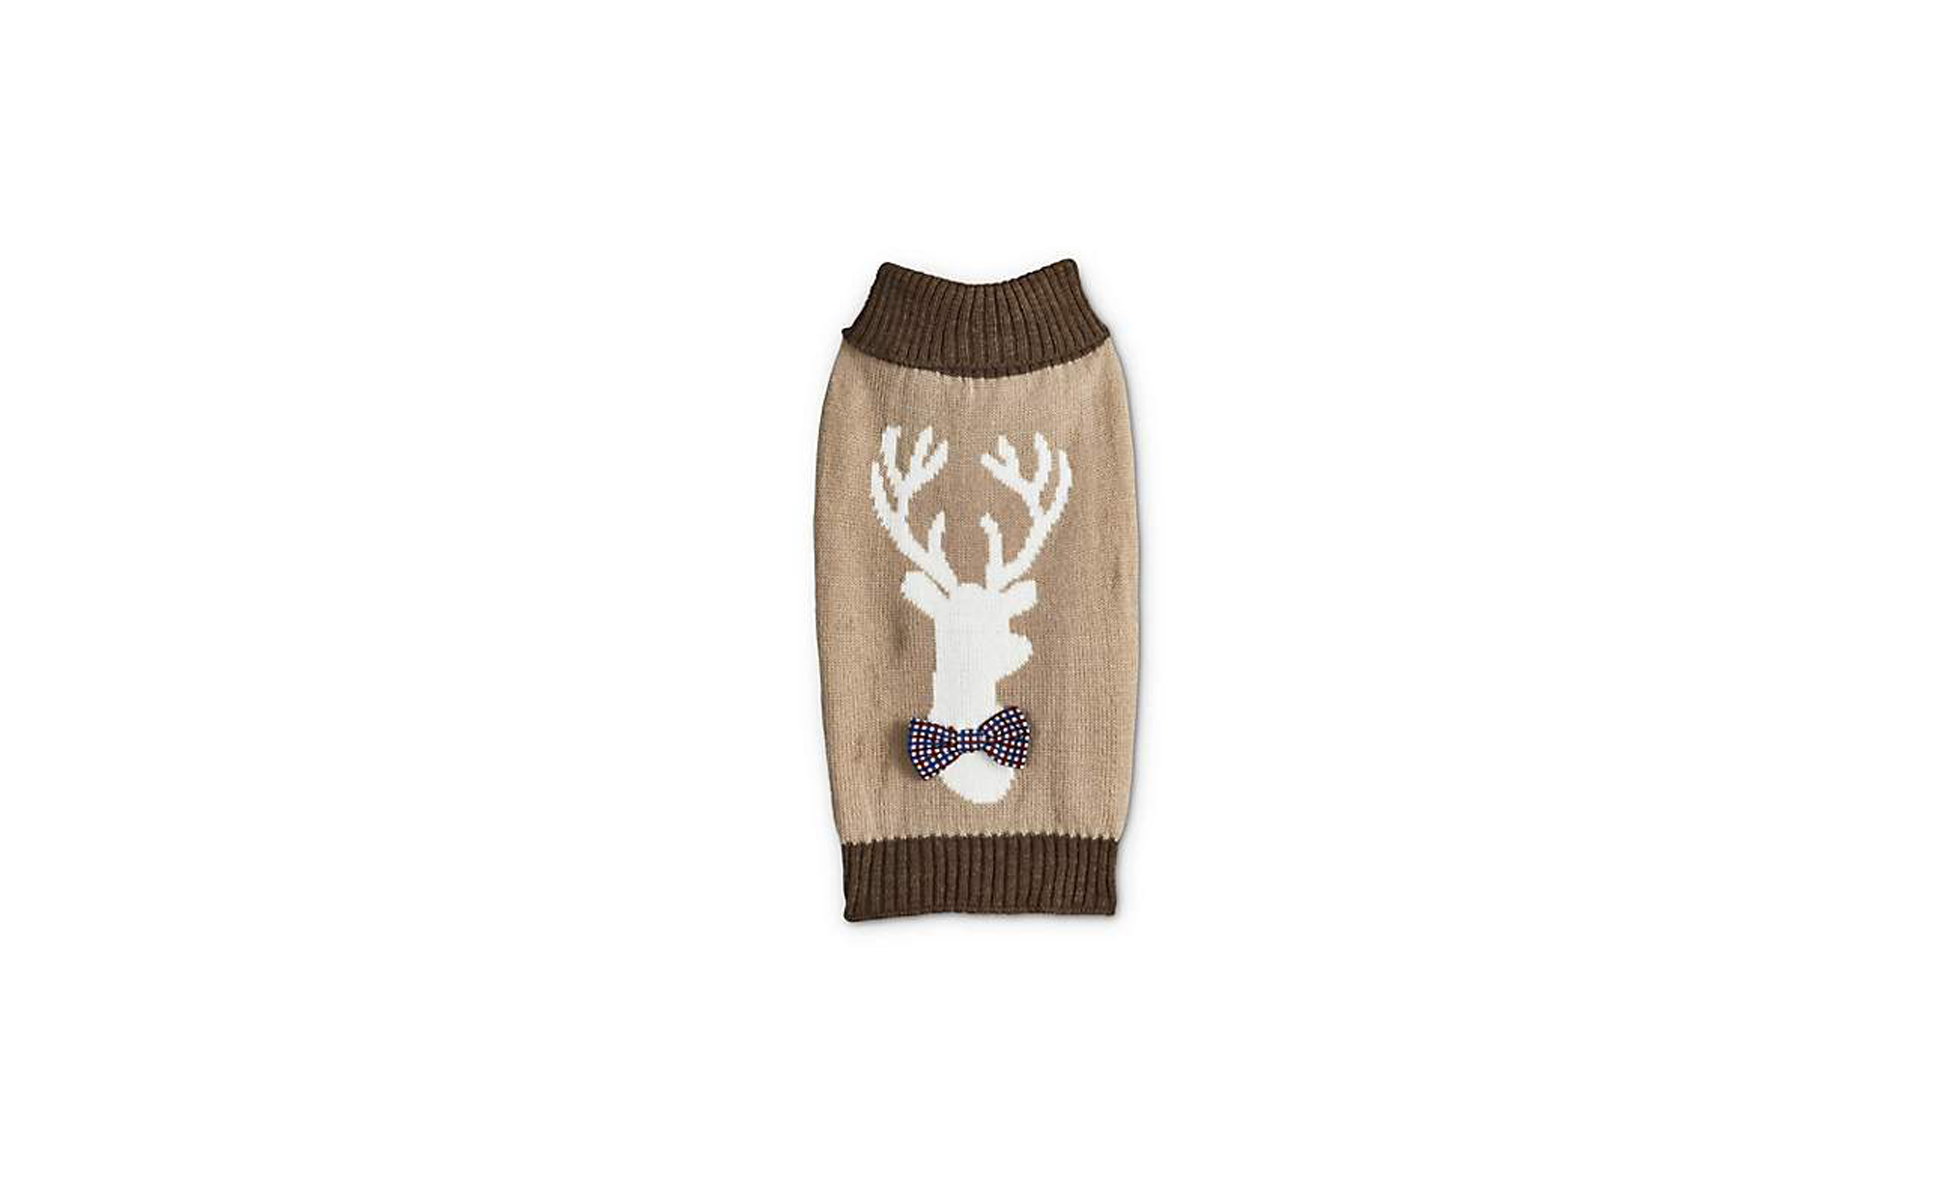 Bond & Co. Oatmeal Reindeer Sweater